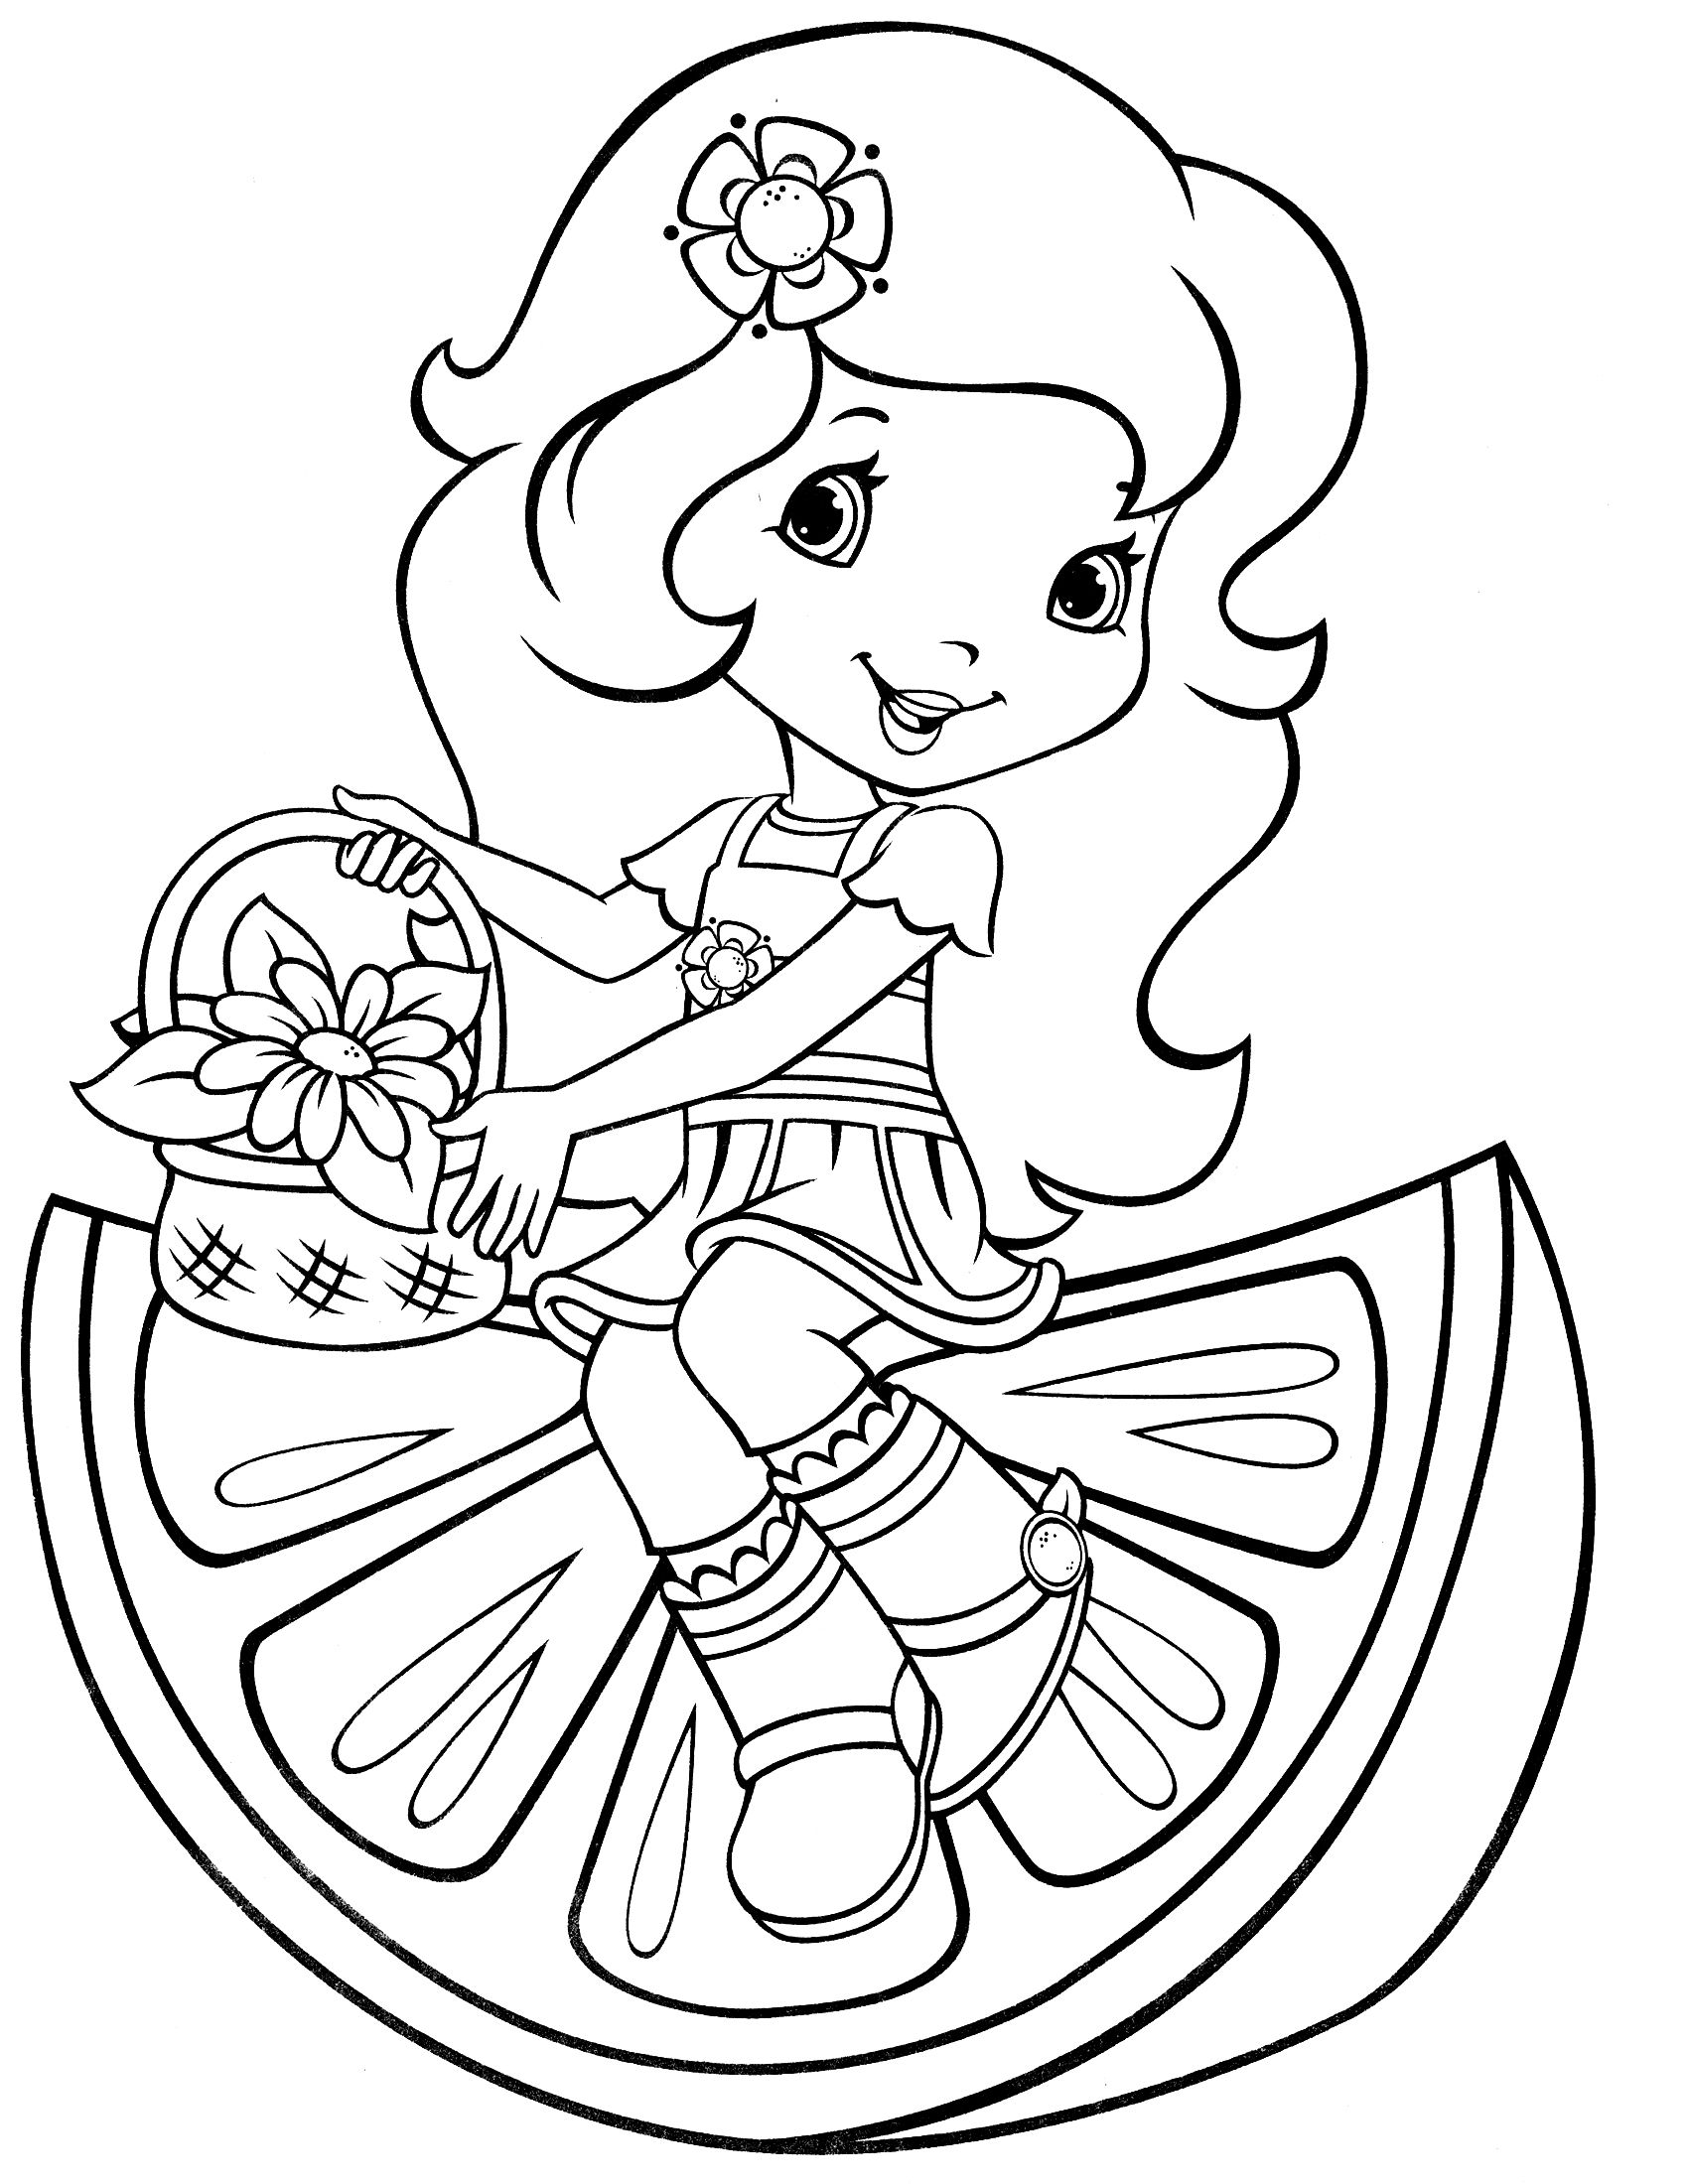 Strawberry Shortcake Coloring Page Coloring Strawberry Shortcake